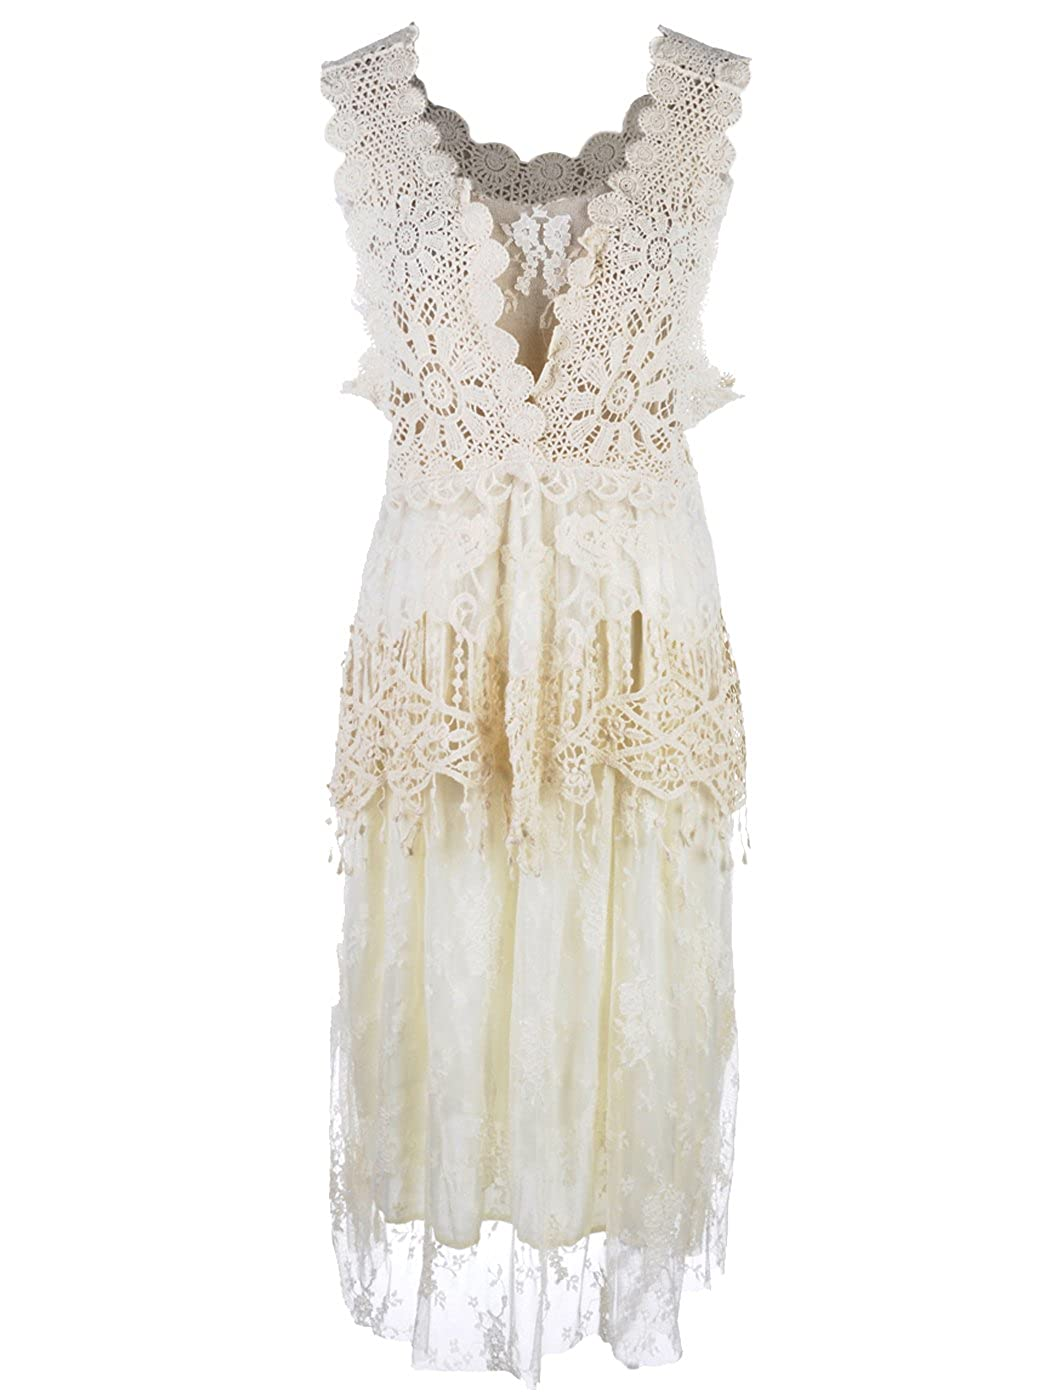 1920s Style Dresses, Flapper Dresses Anna-Kaci Womens Vintage Granny Influence Embroidery Detail Lace Ruffle Dress $47.90 AT vintagedancer.com